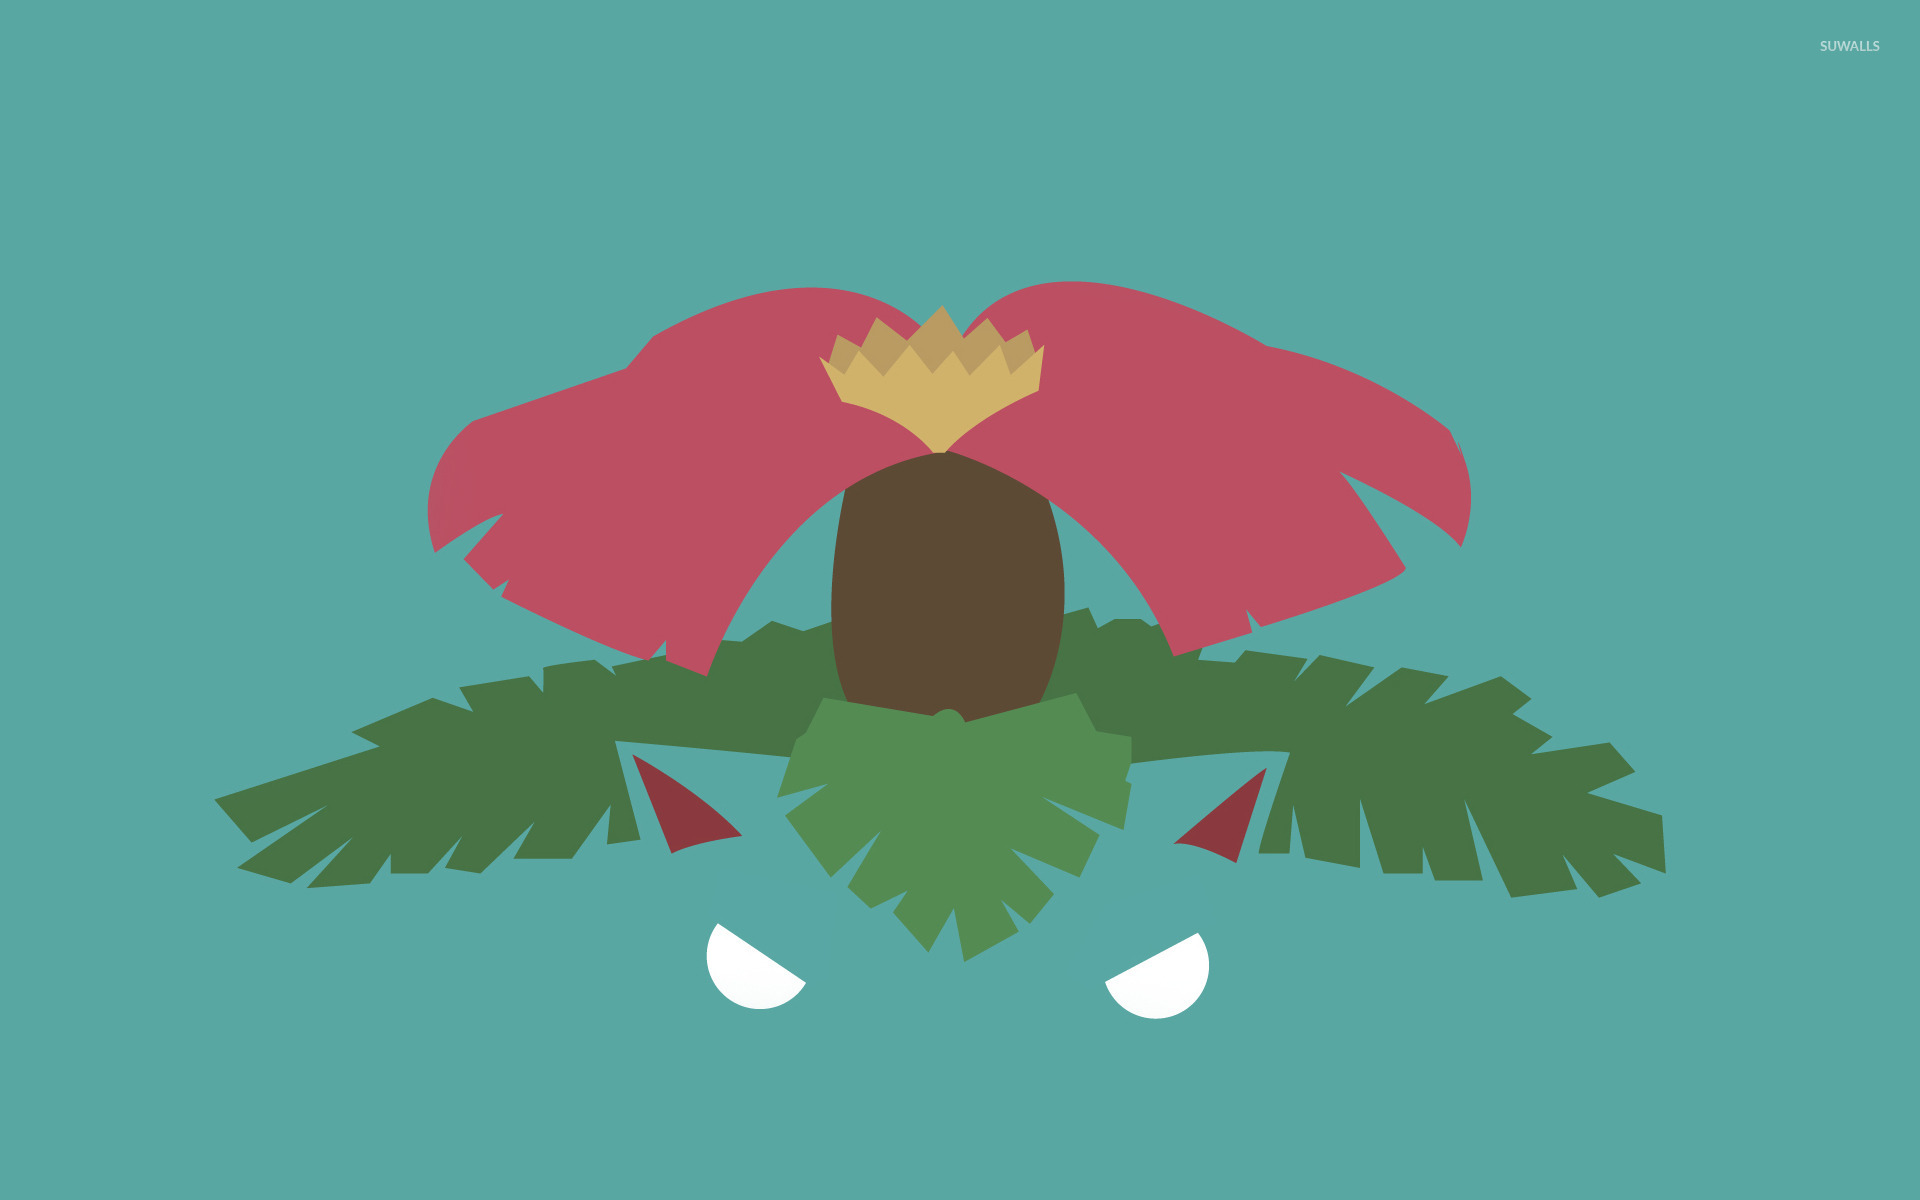 Venusaur Pokemon Wallpaper Minimalistic Wallpapers 21141